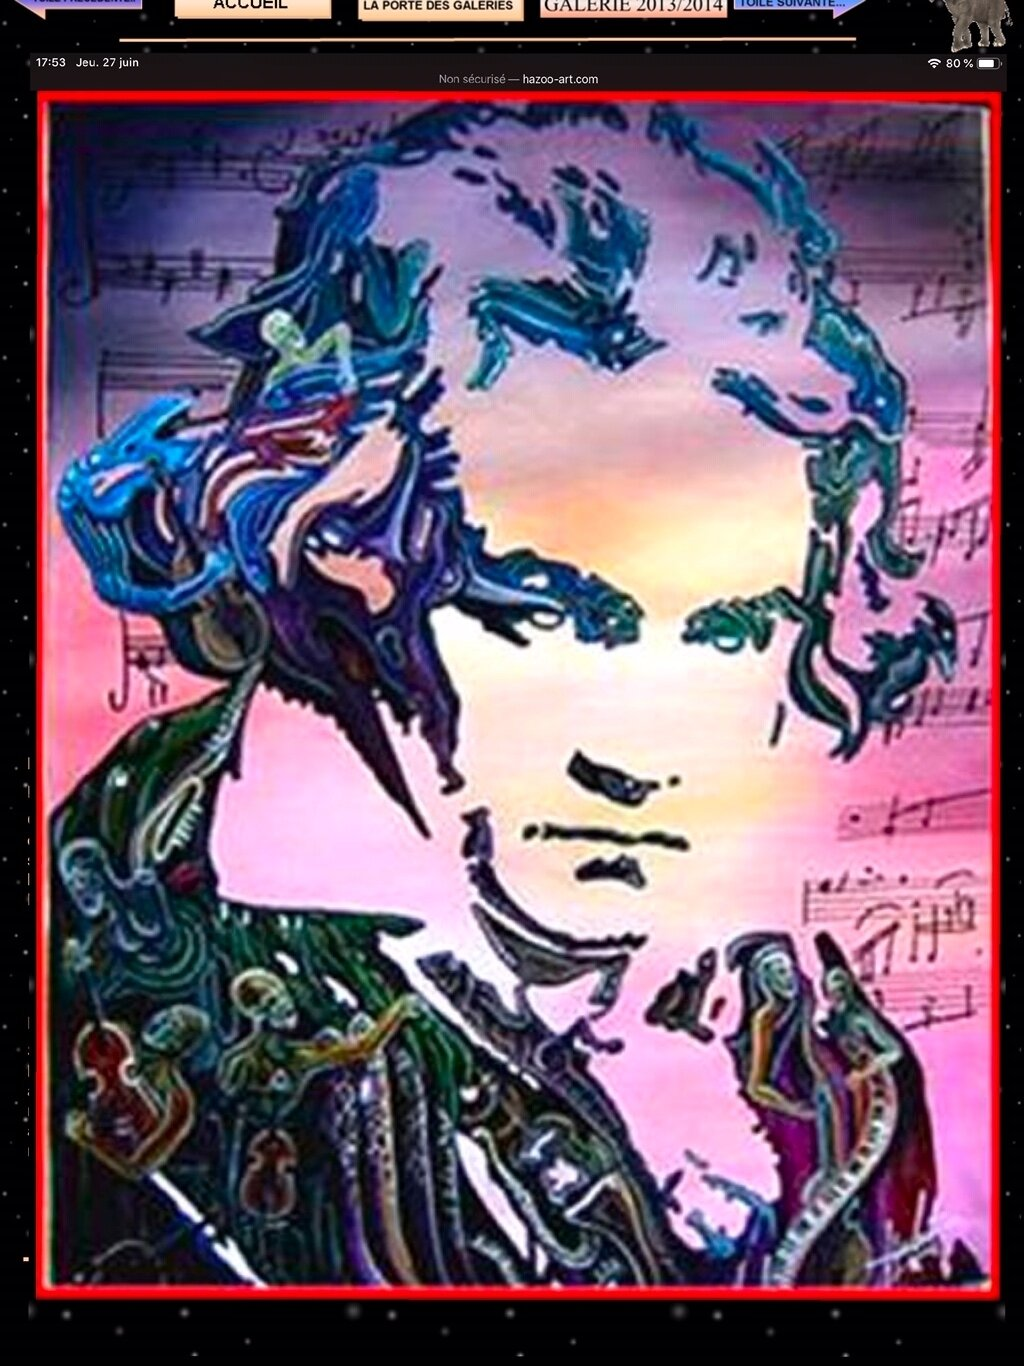 BEETHOVEN....huile sur toile by Hazoo!